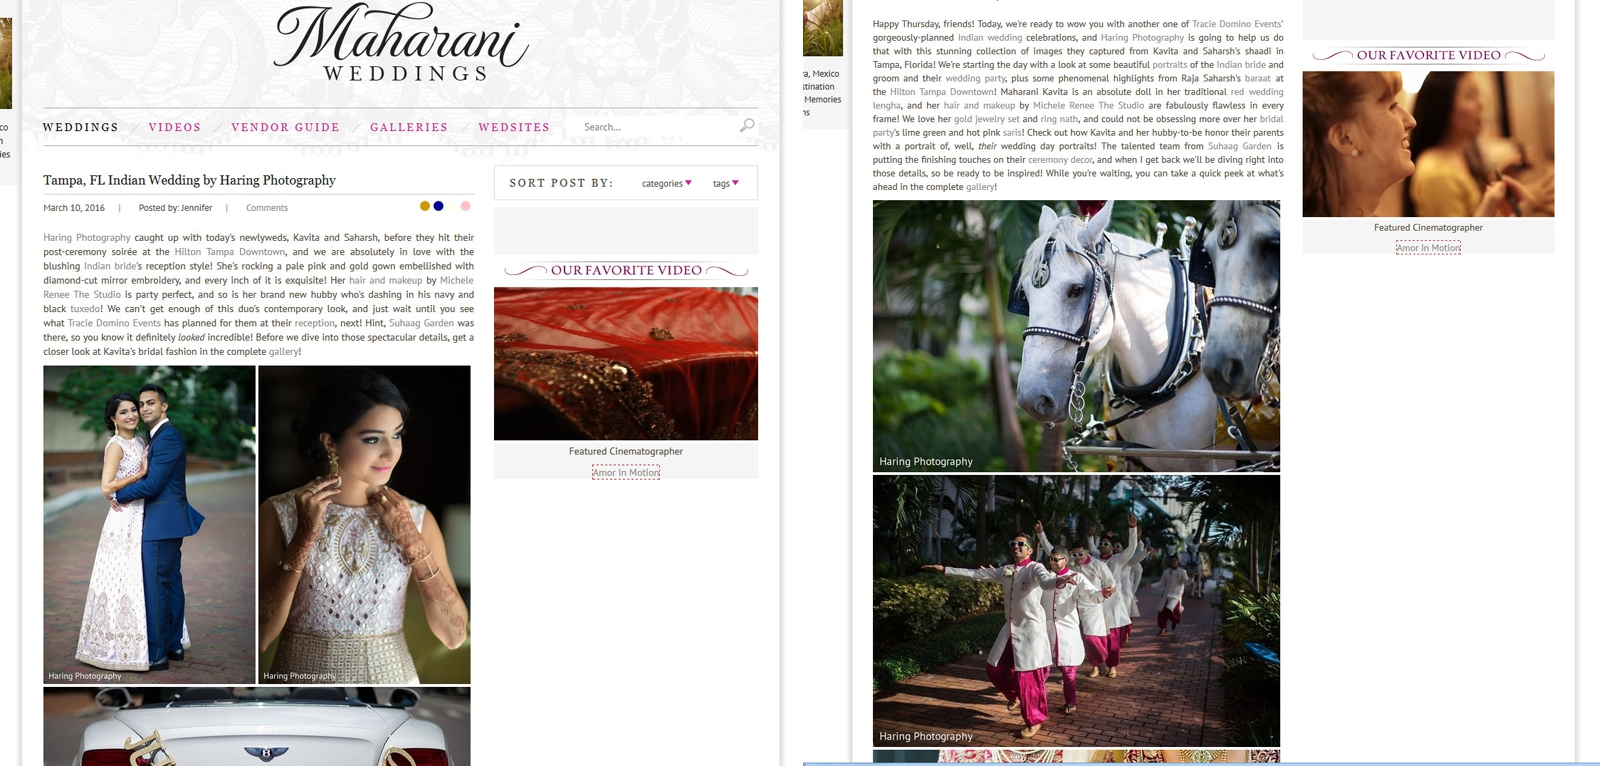 Latest Published Wedding in a Magazine, Miami Wedding Photographers | Häring Photography, Indian Wedding Photographer in Florida, Best Muslim, Hindu - South East Asian Wedding Photographers